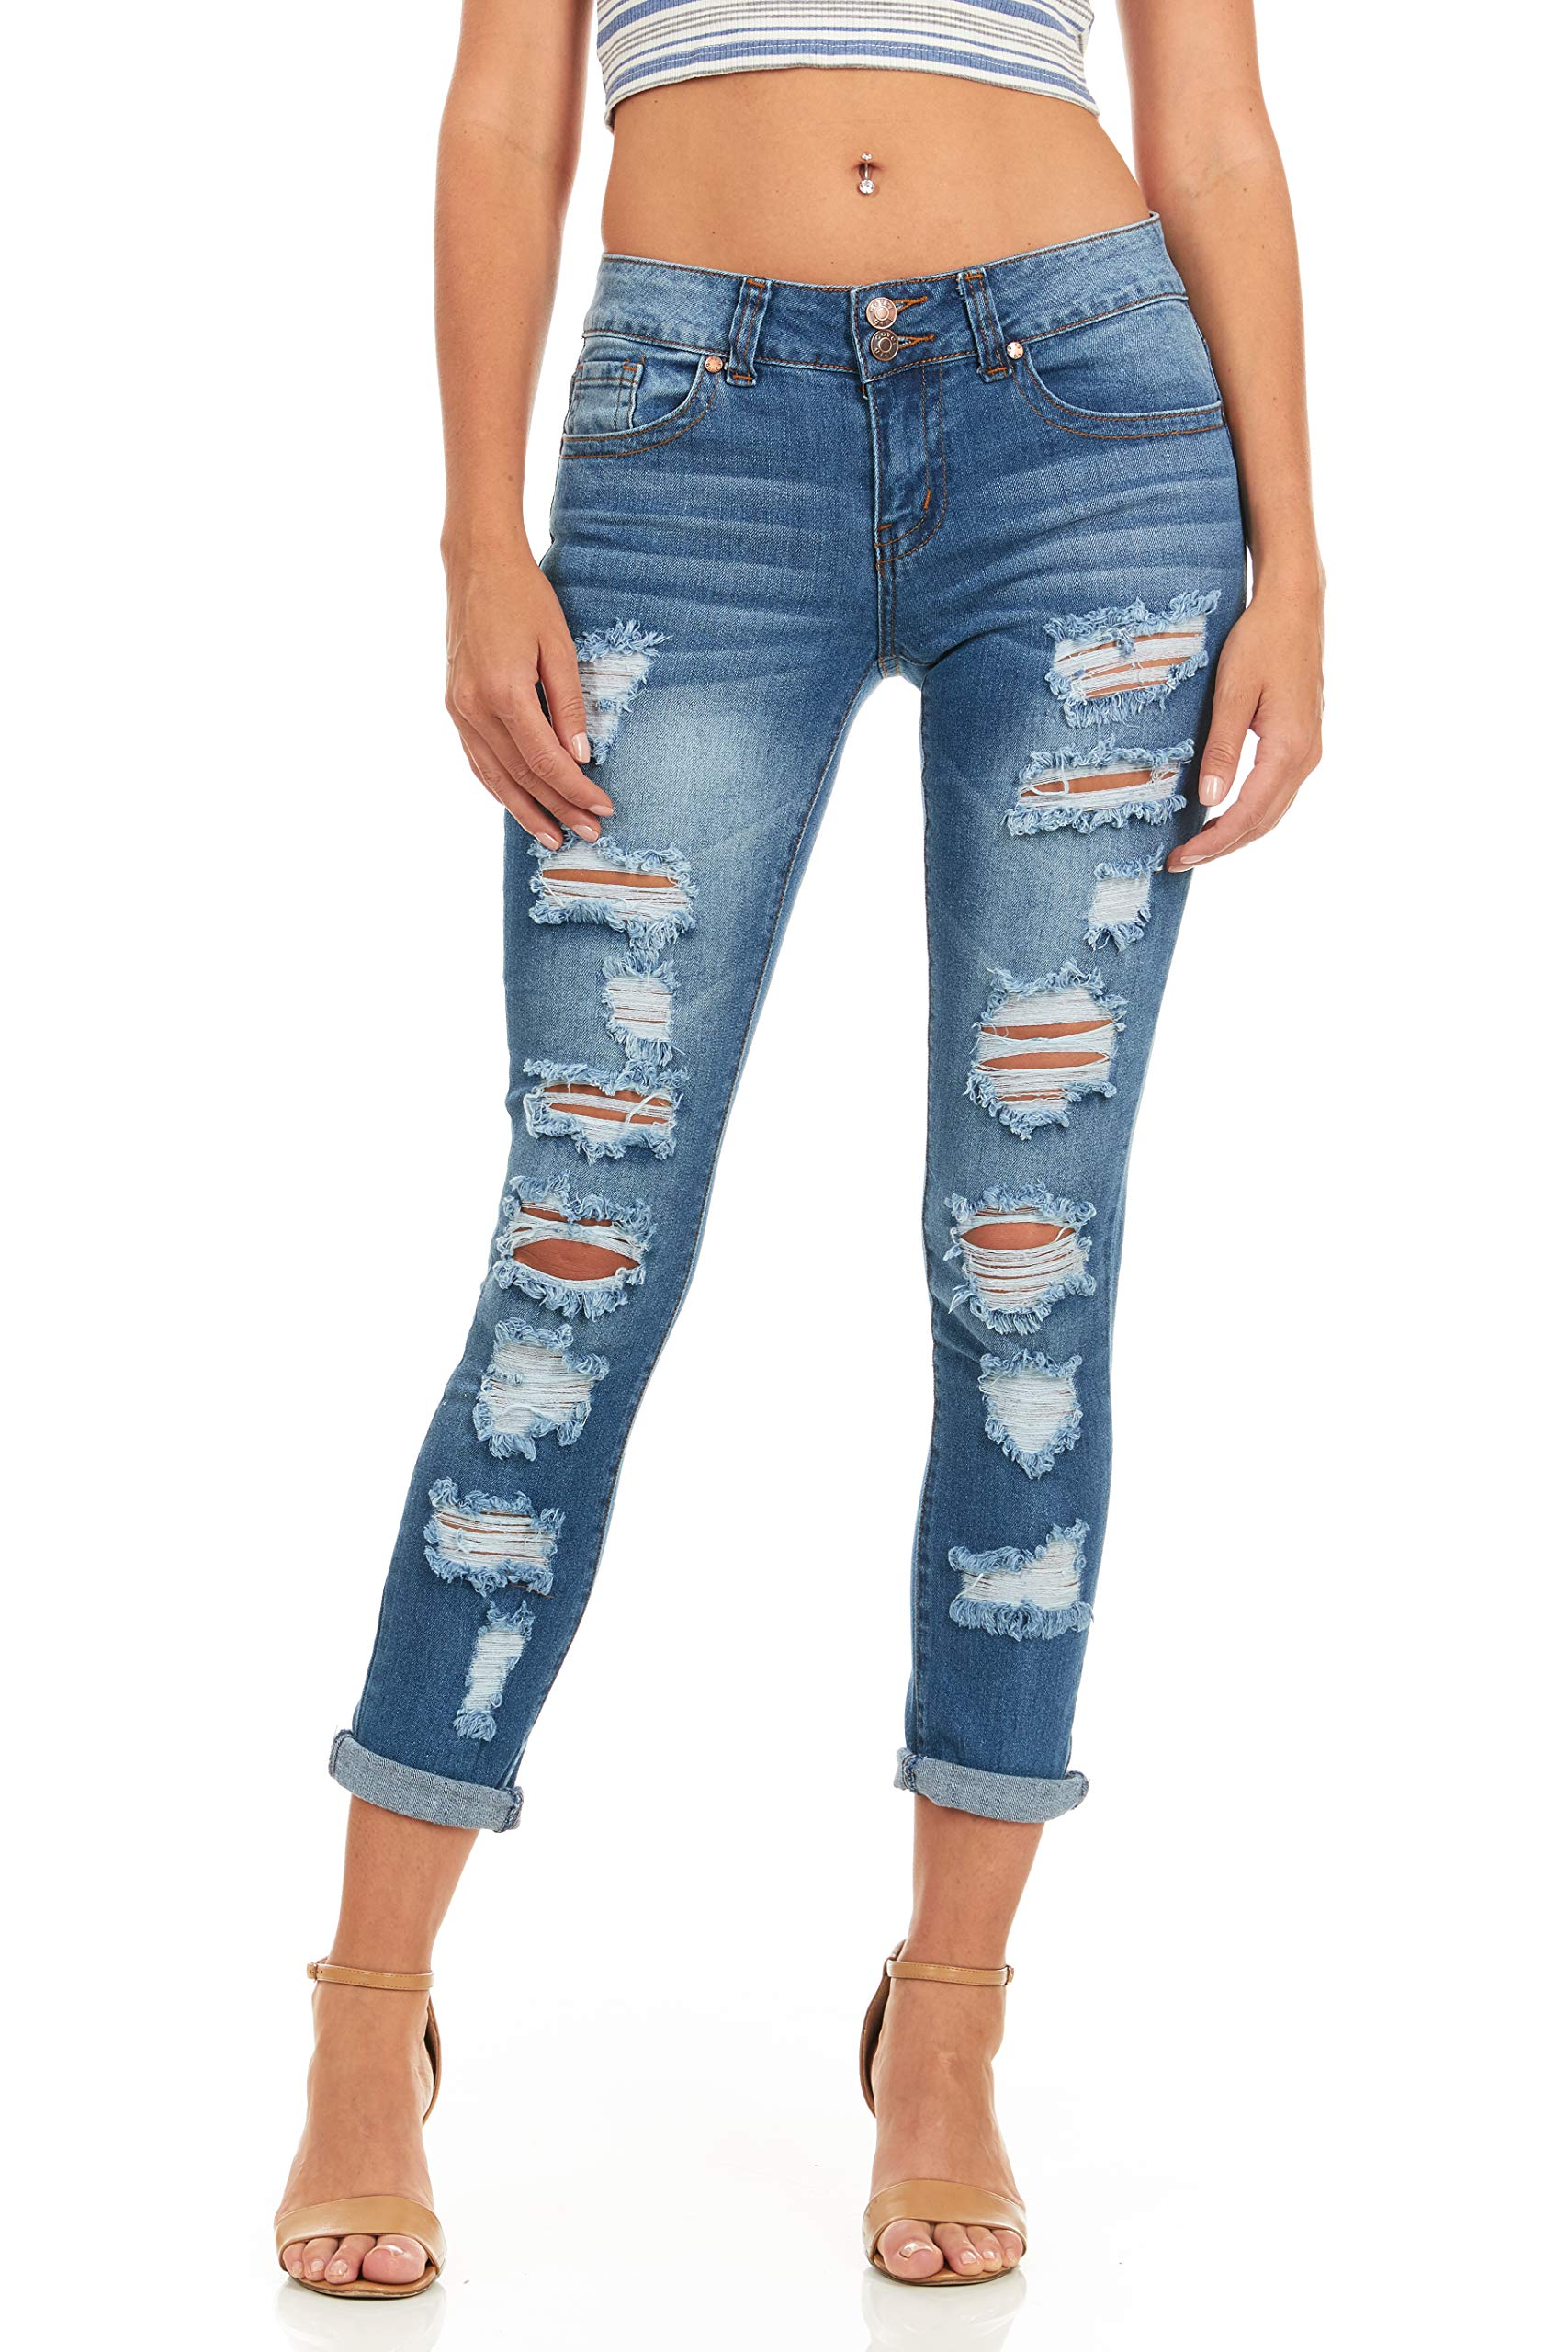 Cover Girl Skinny Ripped Jeans for Women Distressed Blue, Electric, 15 by Cover Girl (Image #5)